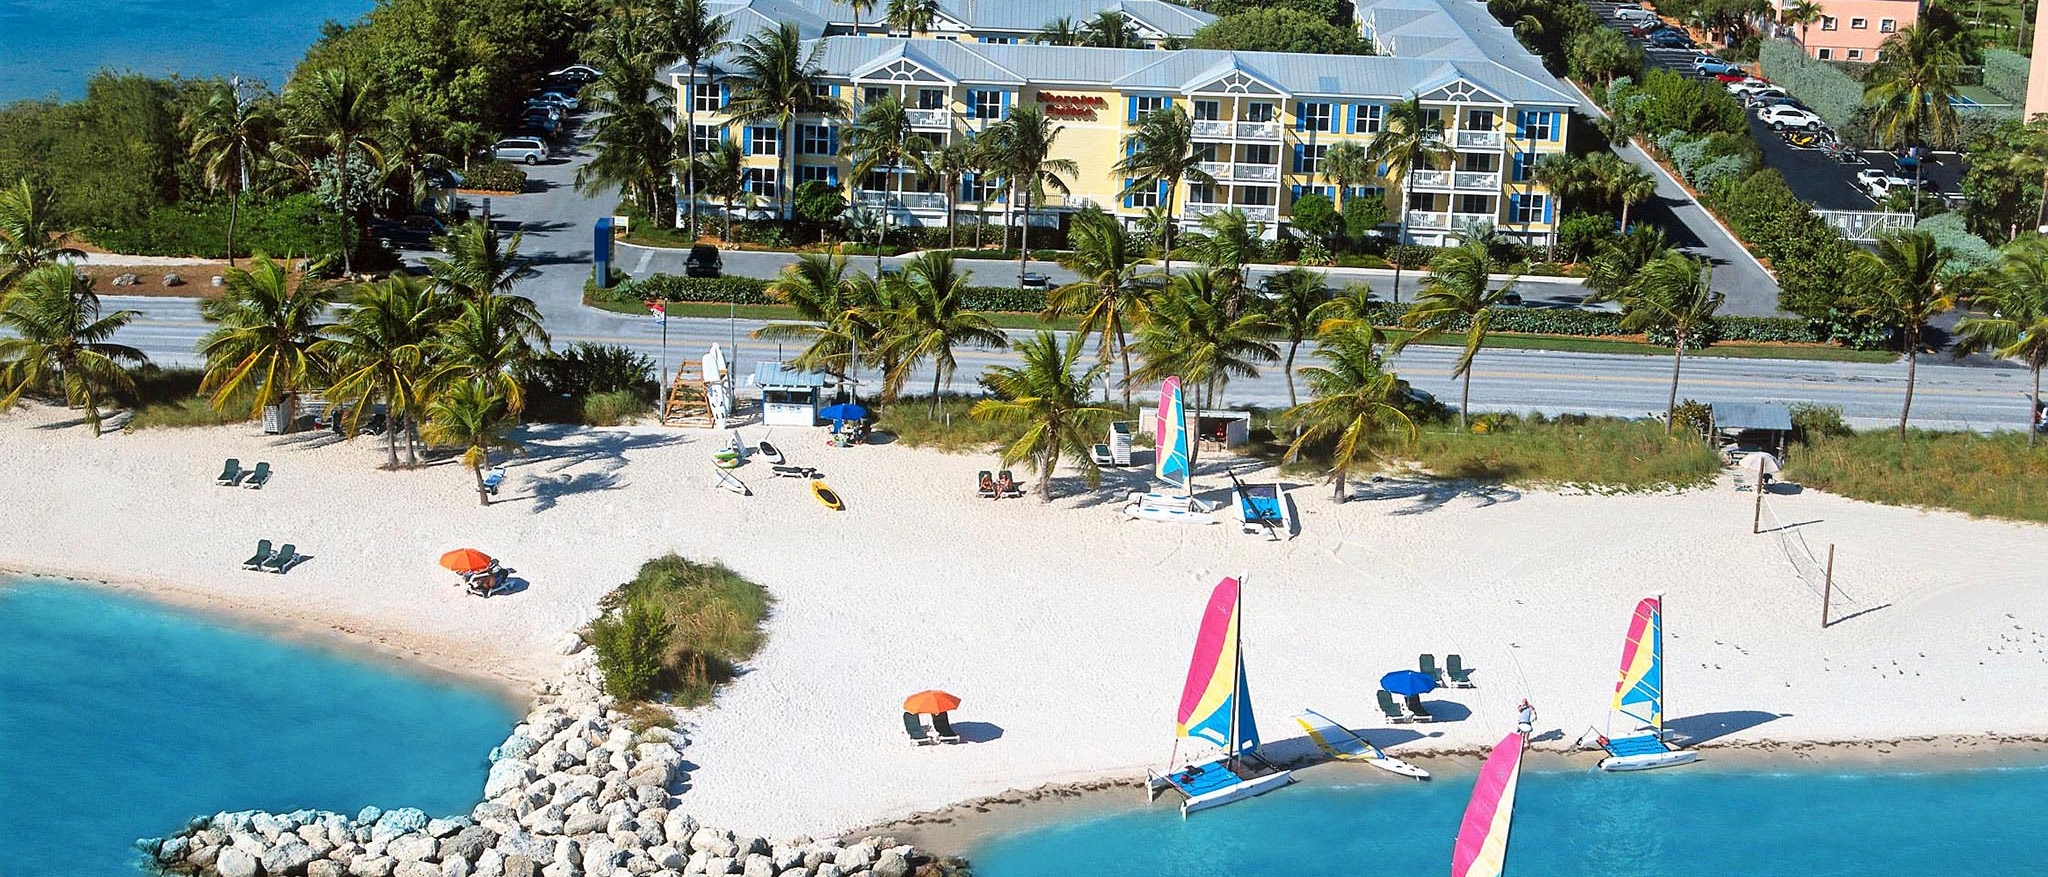 key west express | sheraton suites key west